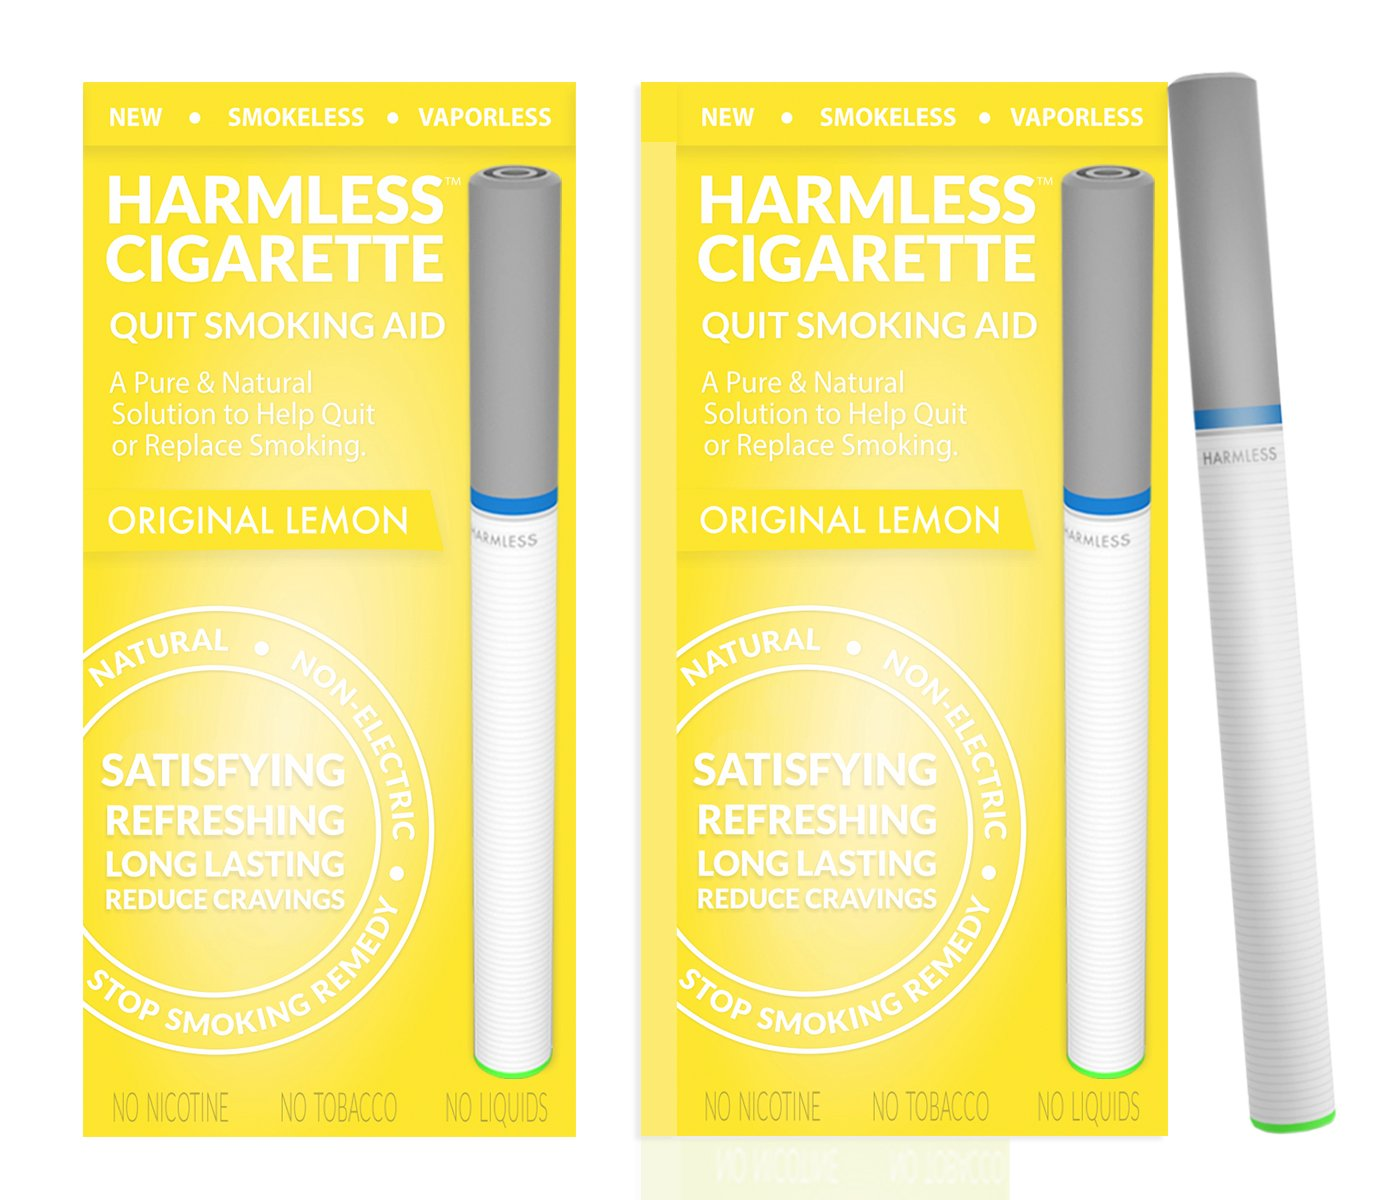 Natural Quit Smoking Aid/Satisfy Cravings & Reduce Cravings/Safe & Effective Habit Replacement/FREE Support Guide Included (2 Pack, Original Lemon)